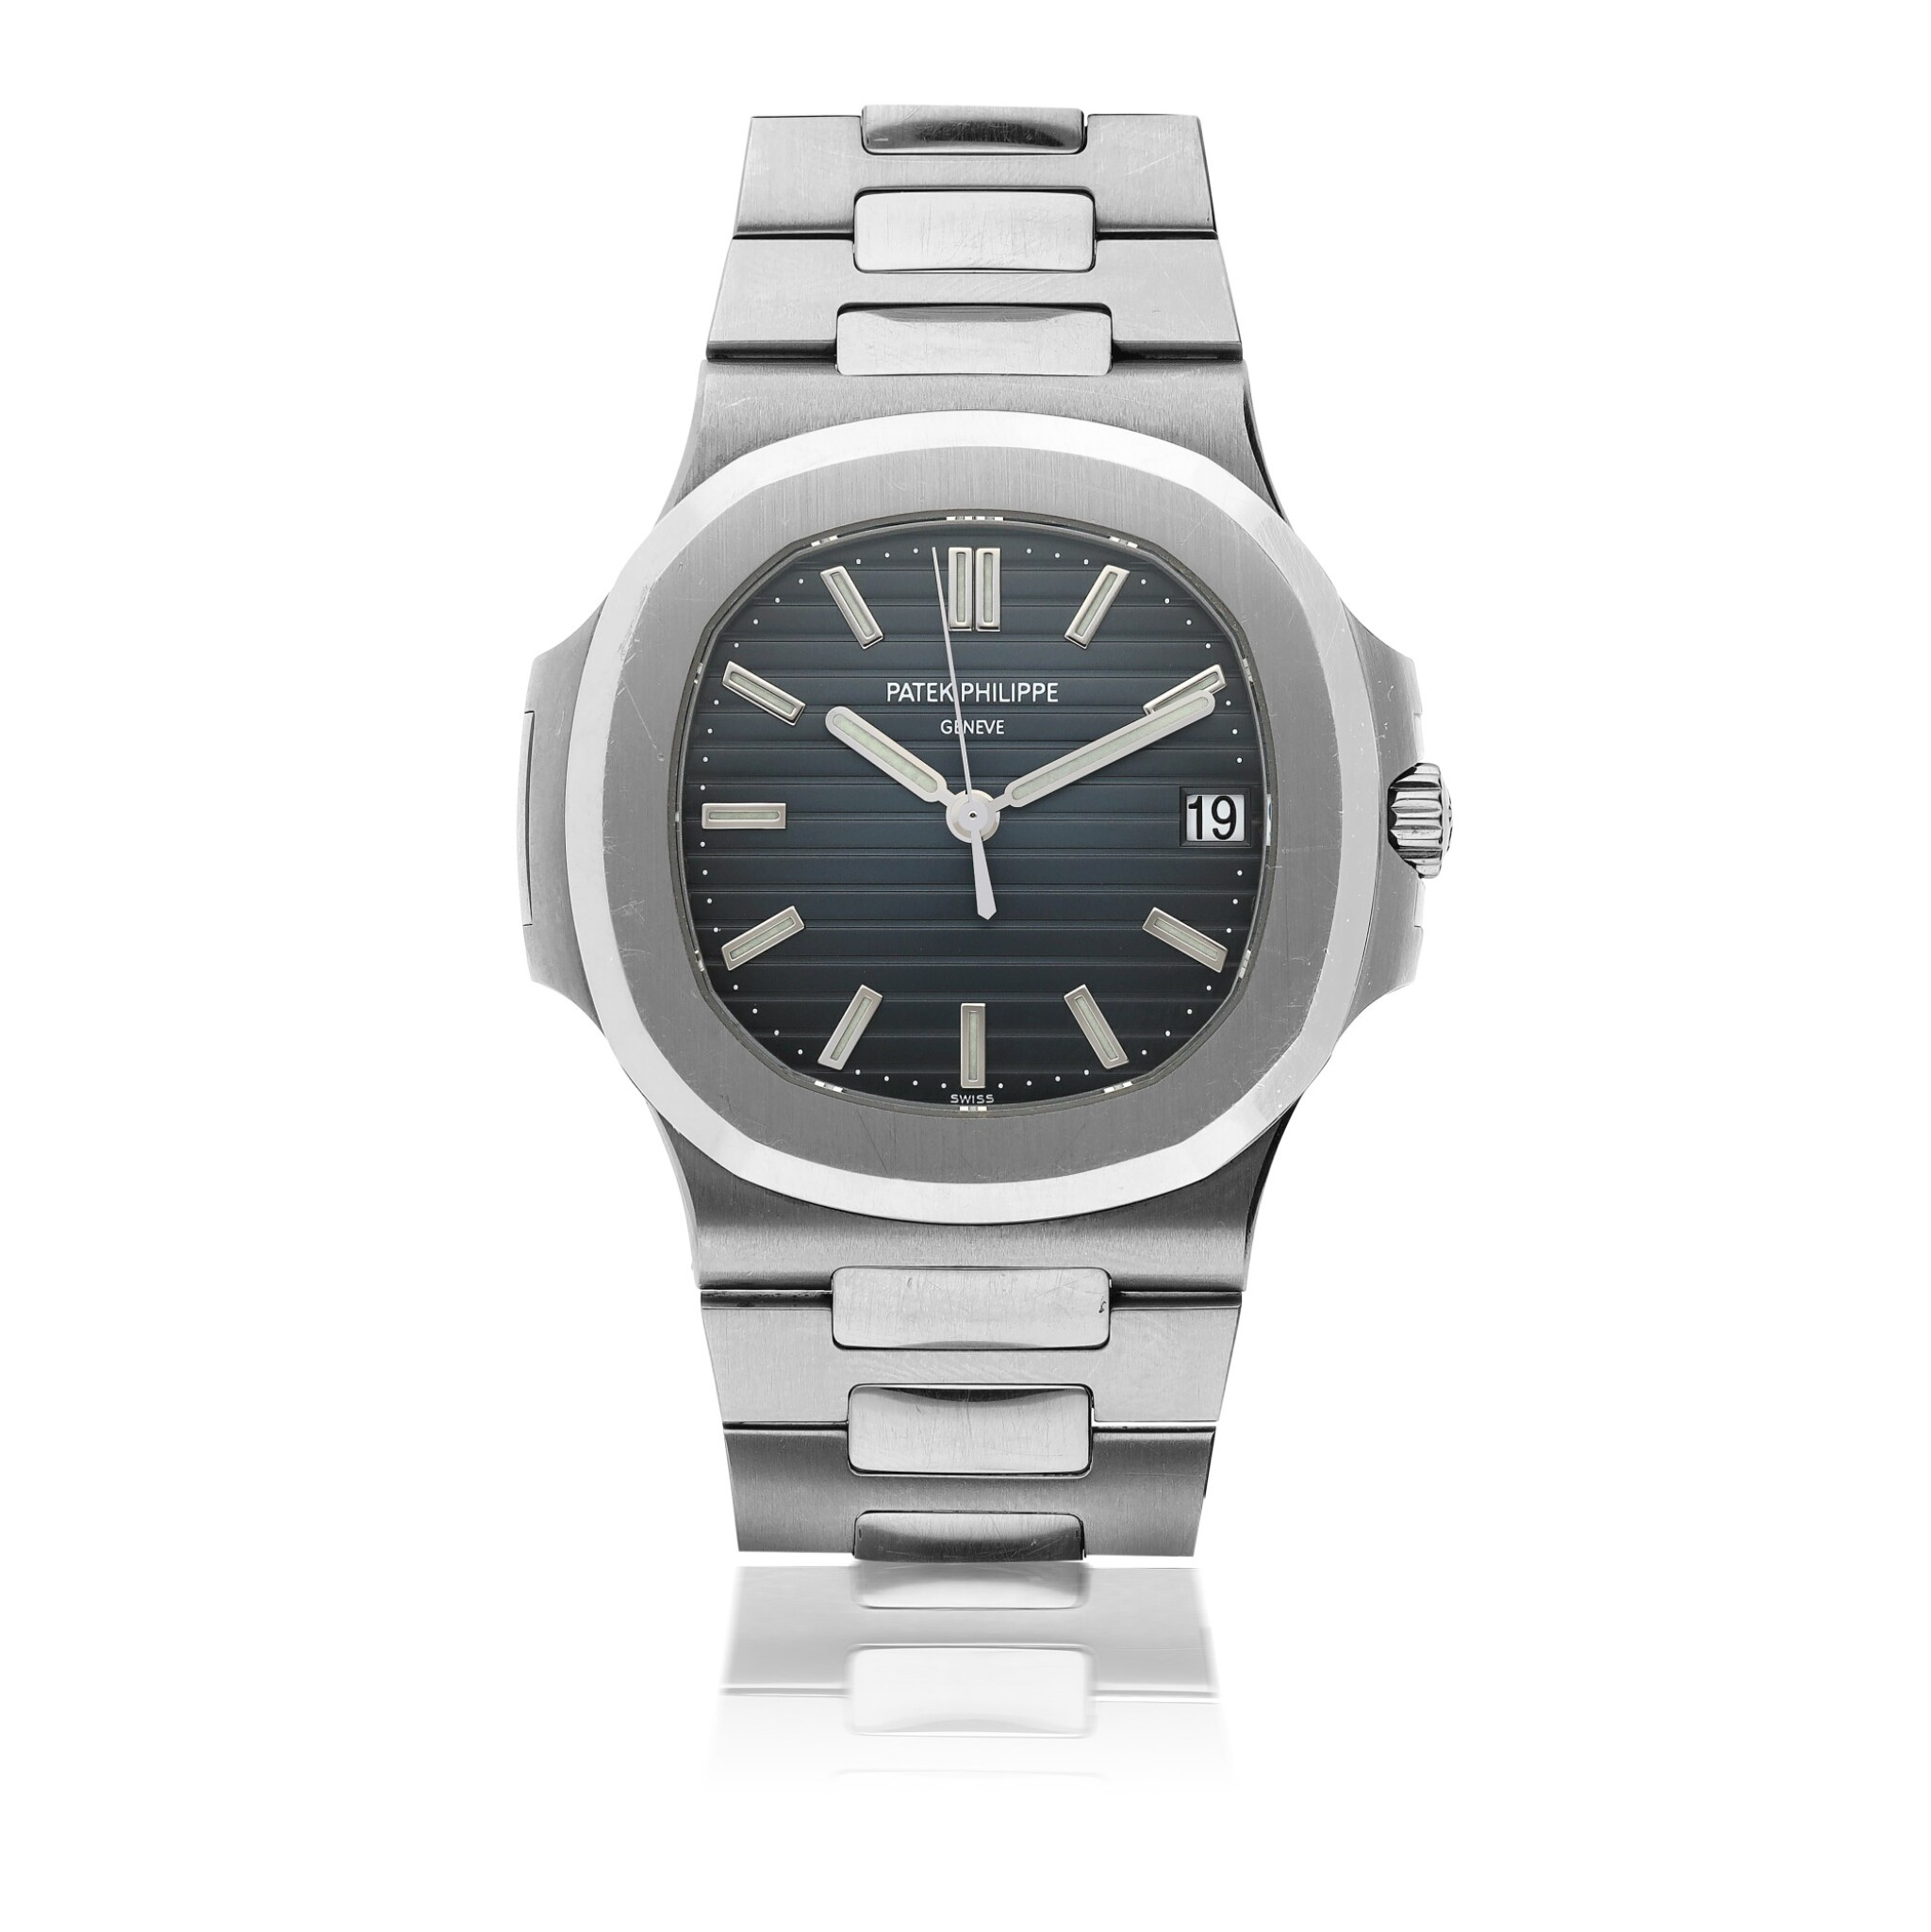 View full screen - View 1 of Lot 5.  PATEK PHILIPPE   NAUTILUS REF 5711, A STAINLESS STEEL AUTOMATIC WRISTWATCH WITH DATE AND BRACELET CIRCA 2015.